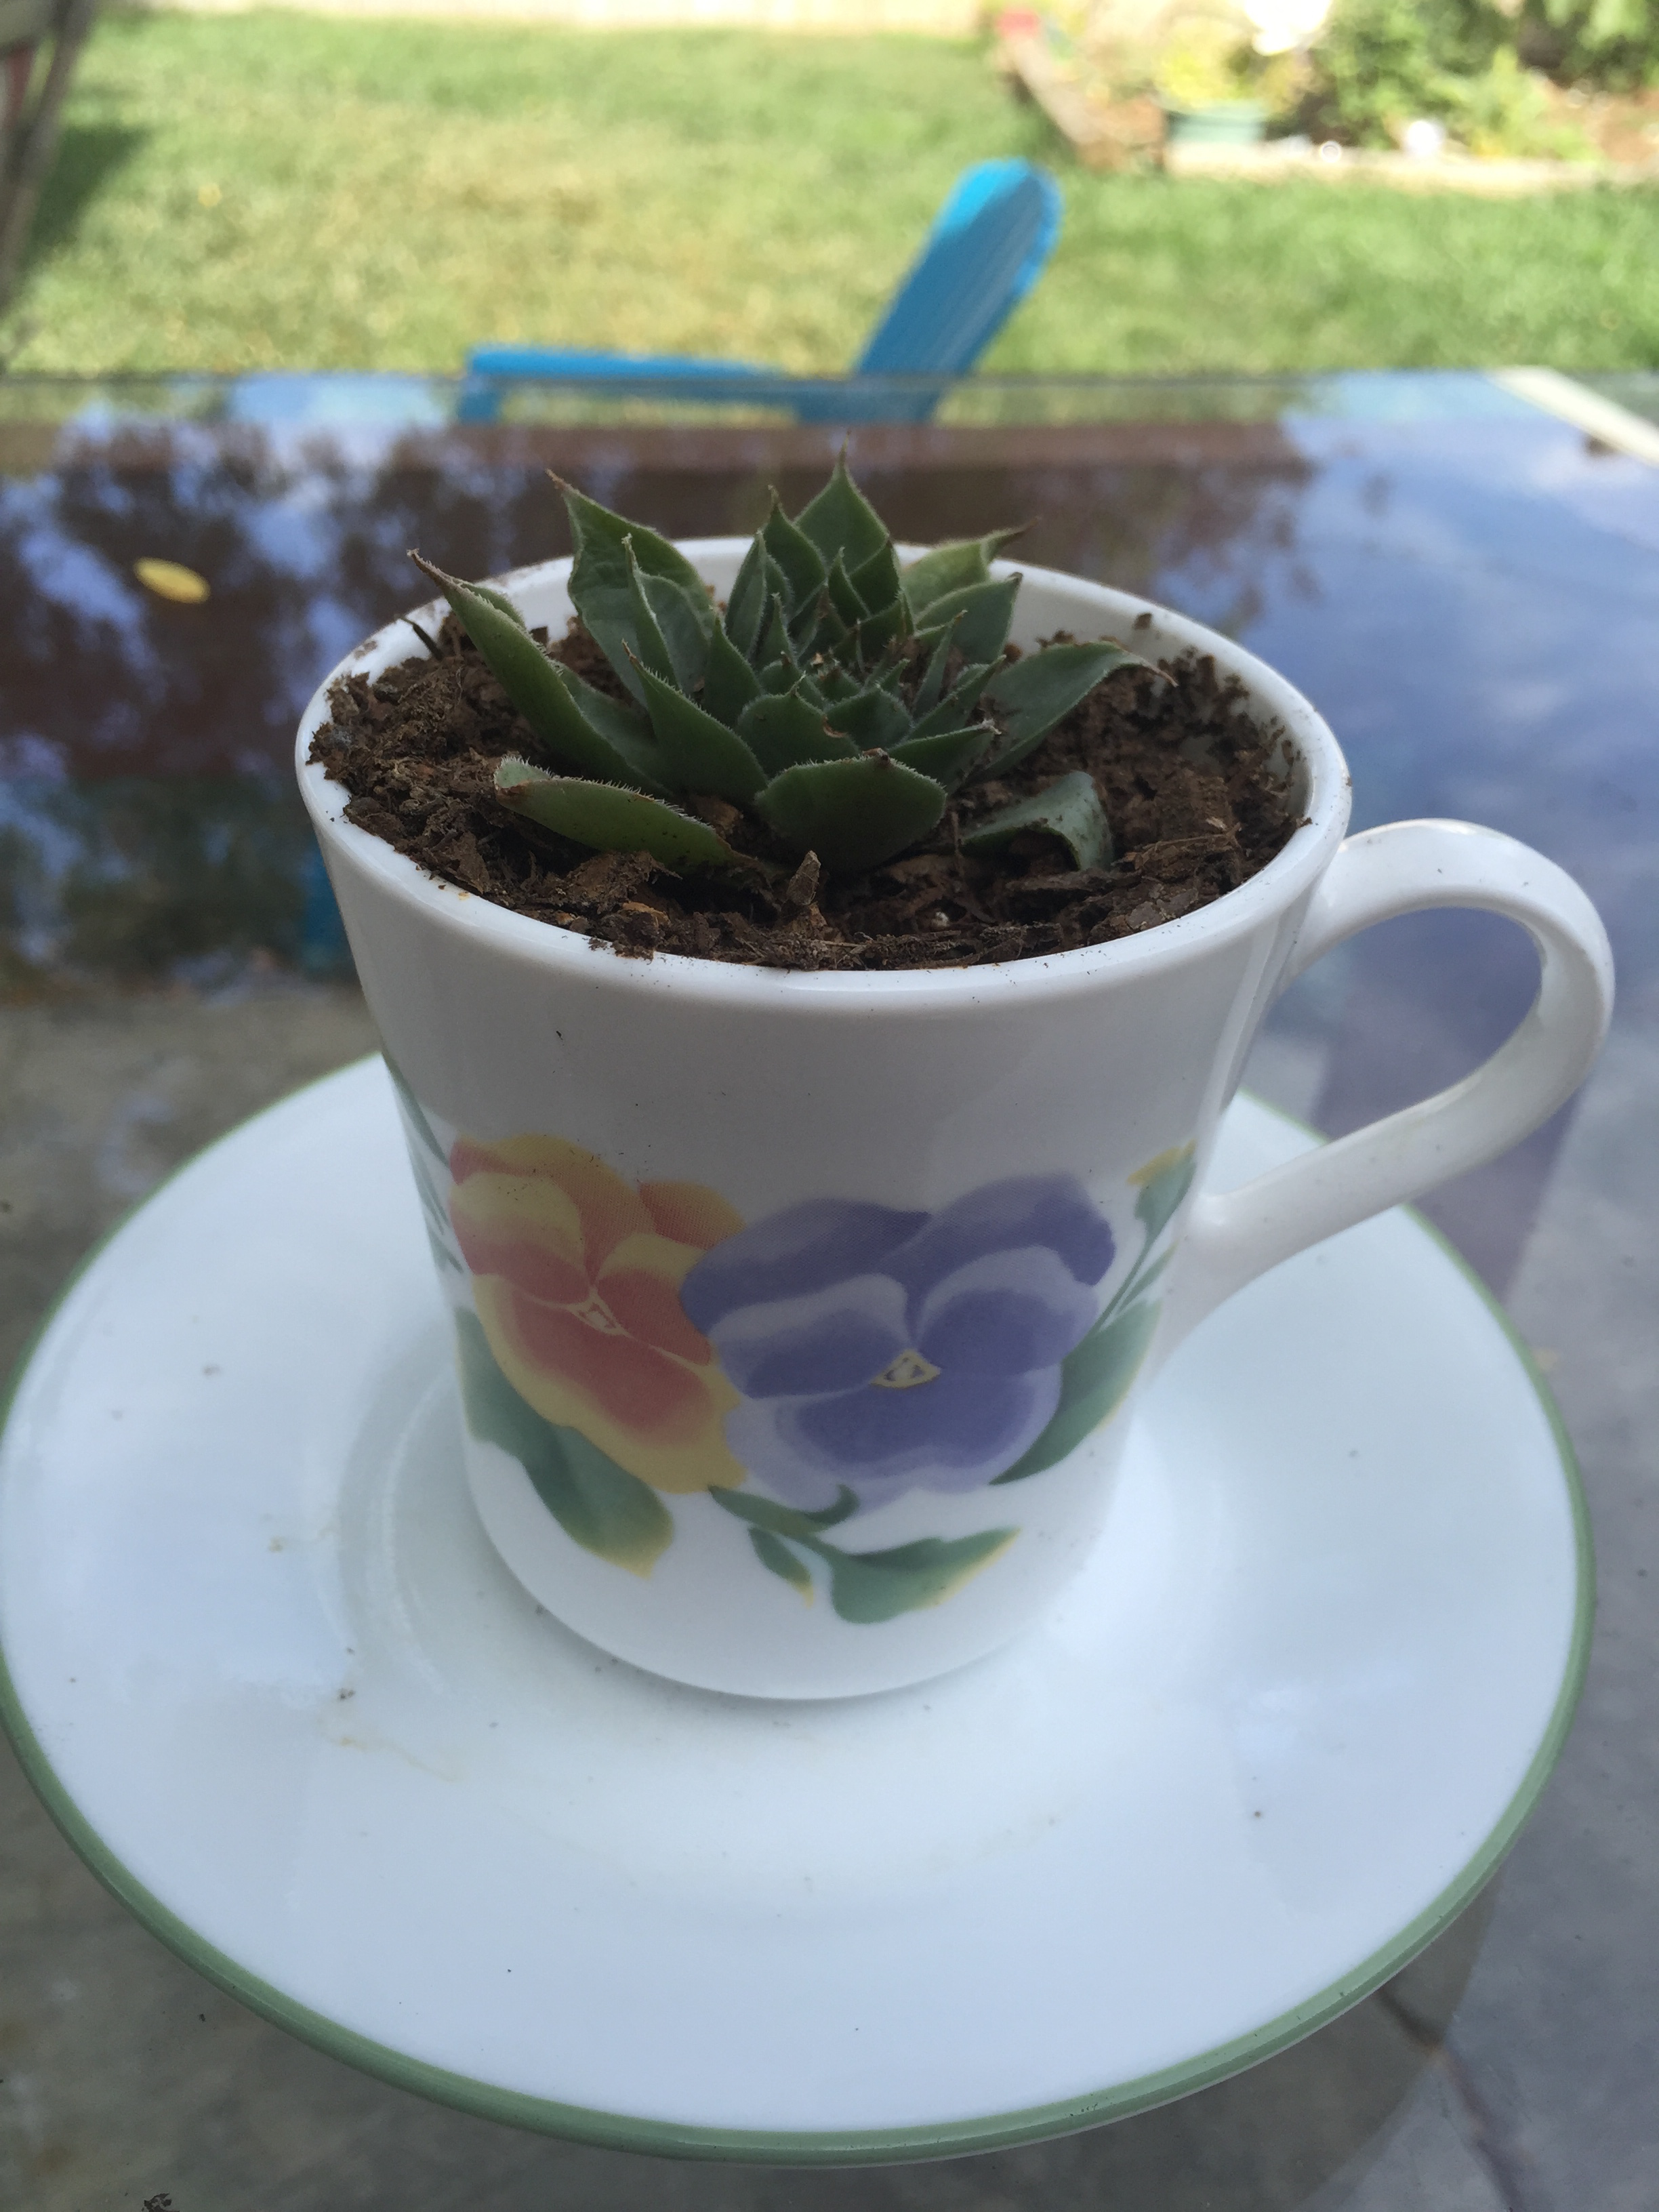 Upcycling my plants and dishes!